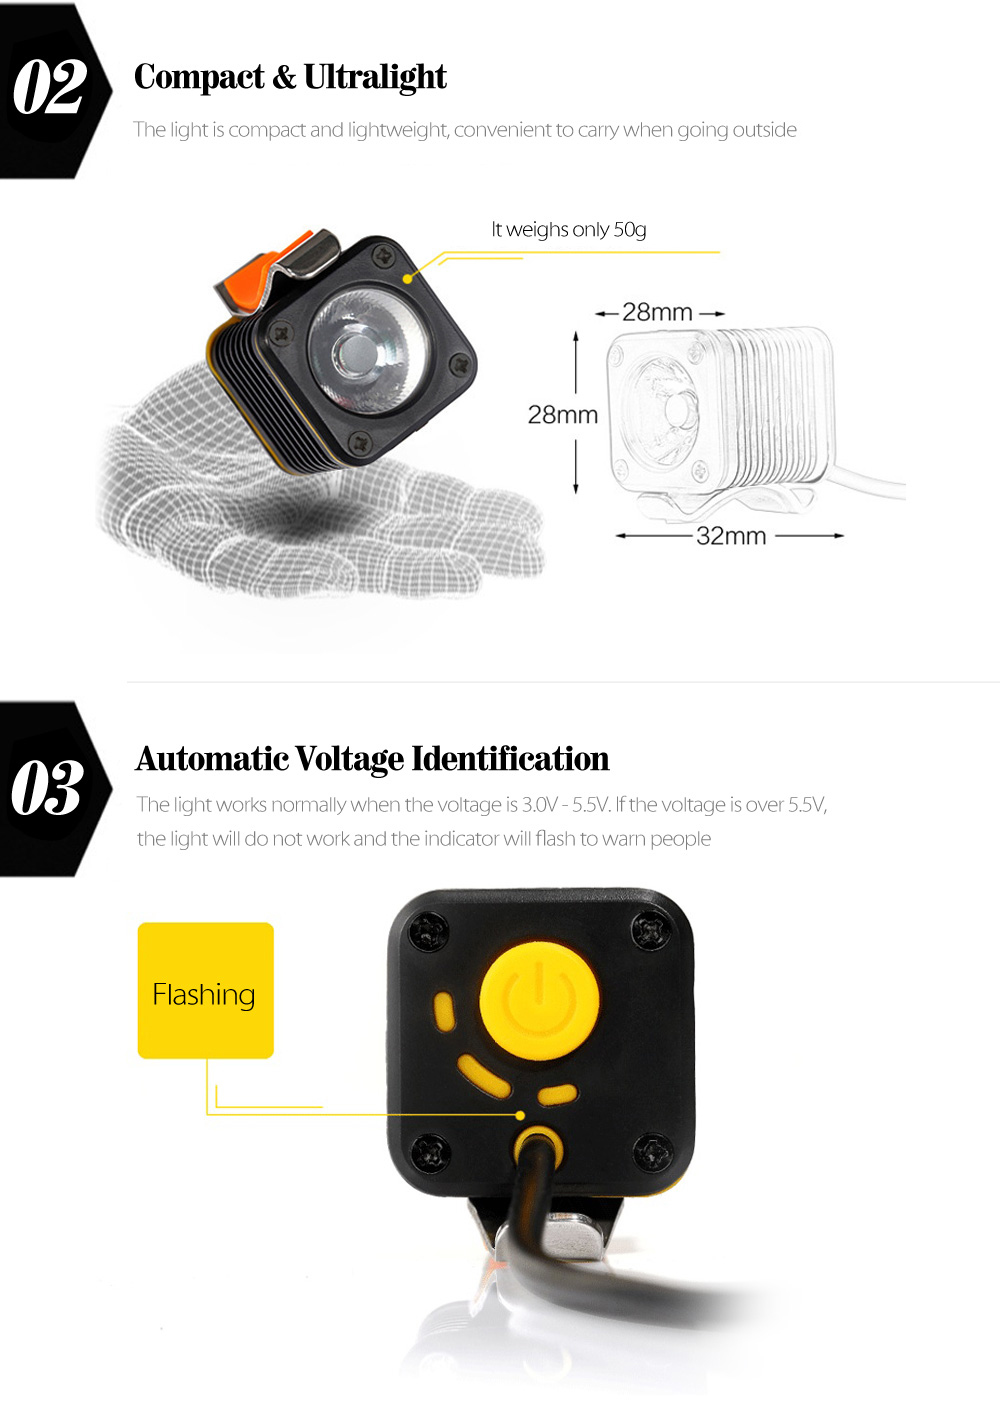 Mini 5v Usb Bike Headlight 486 Free Shipping Automatic Switch Package Contents 1 X 2 Rubber Ring